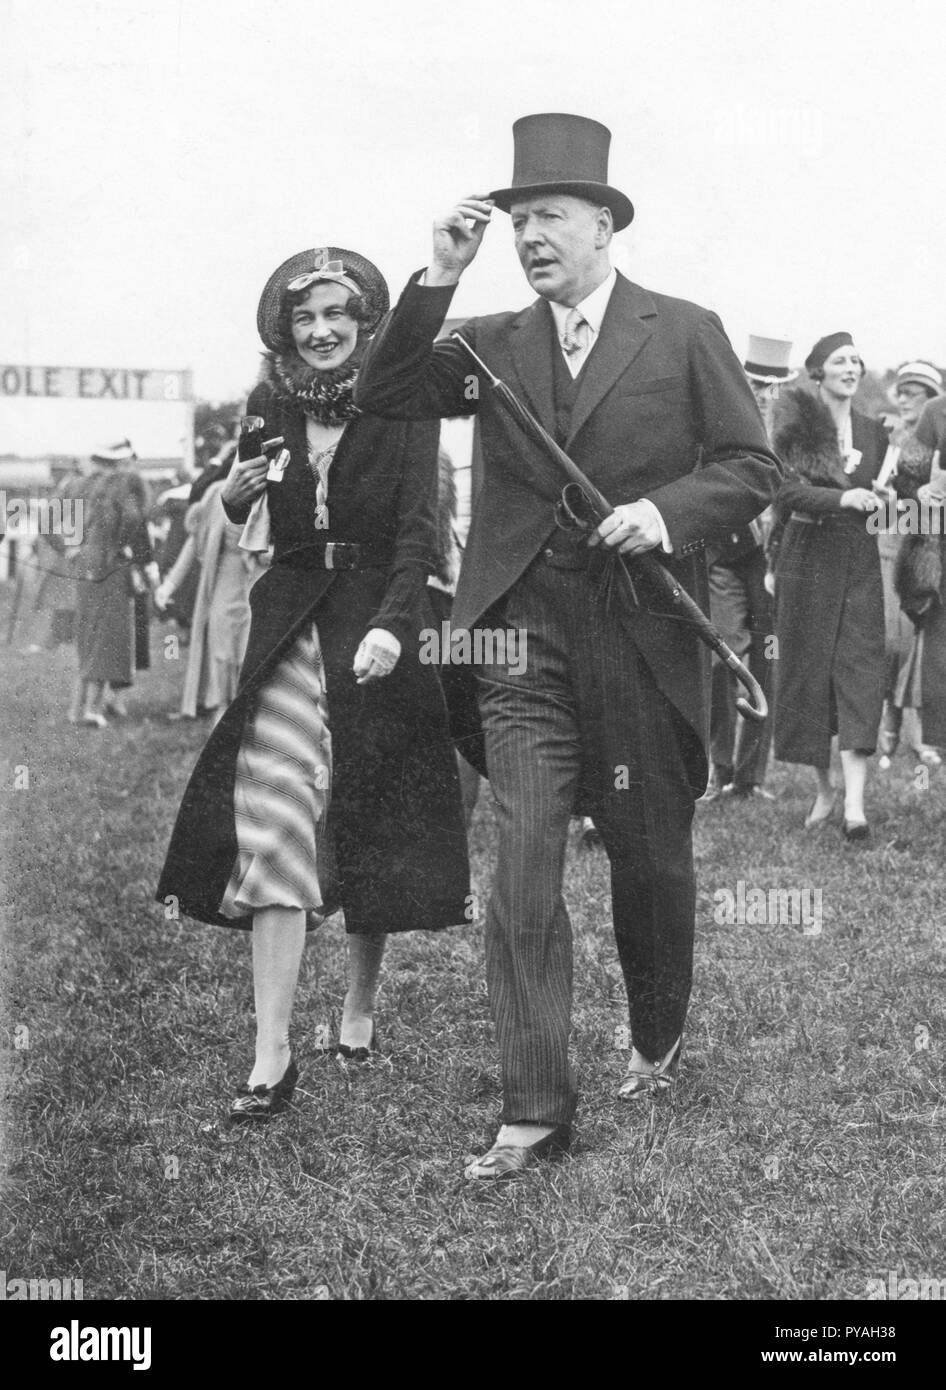 Coco Chanel , 1883-1971. French fashion designer and business woman. Founder and namesake of the Chanel brand with it's signature scent Chanel No. 5. Pictured here at the Epsom Derby horseracing event, together with the Duke of Westminster. May 31 1933 - Stock Image